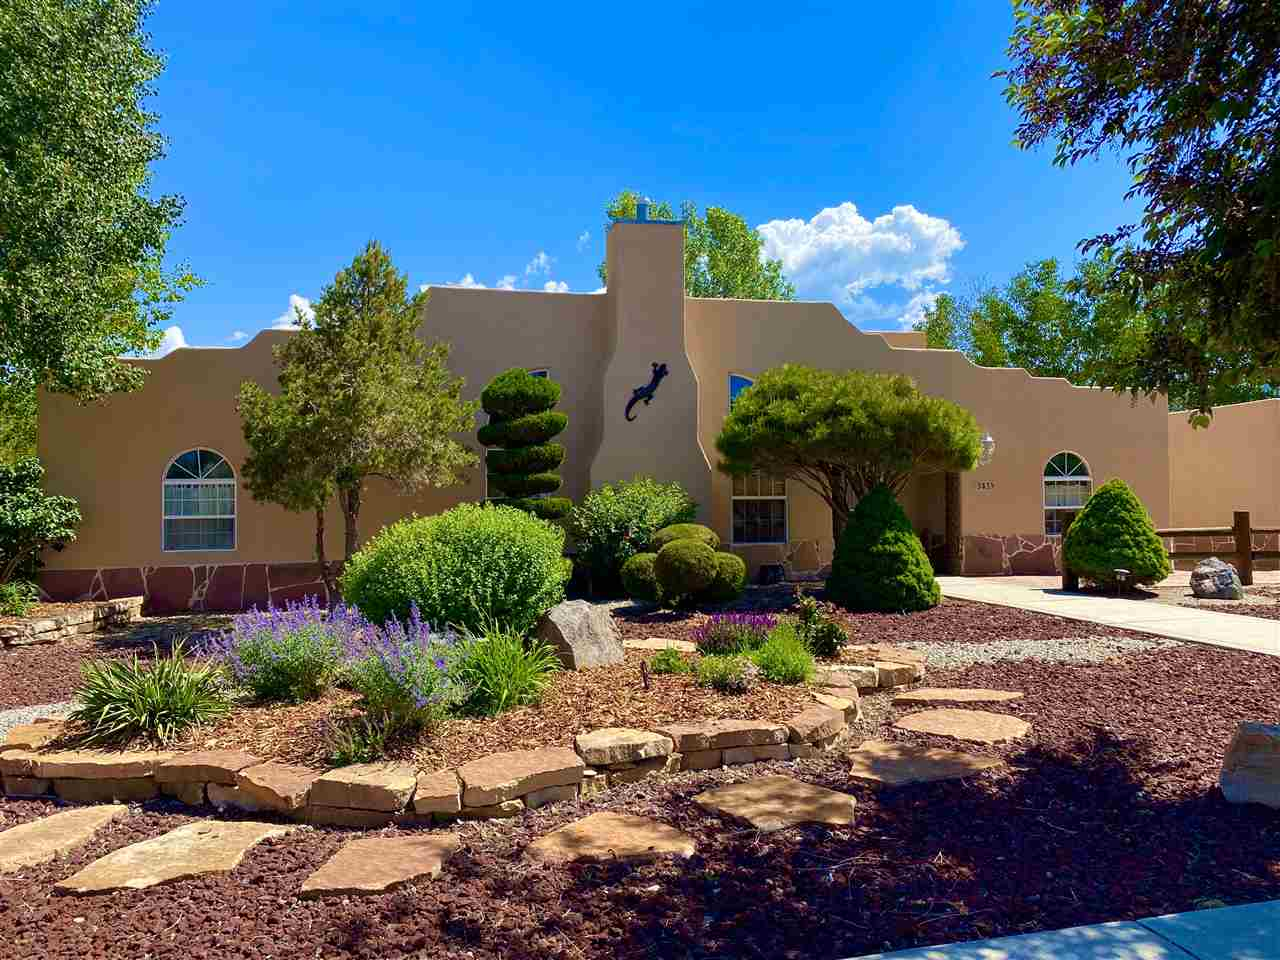 343 Sierra Vista Lane, Taos, NM 87571